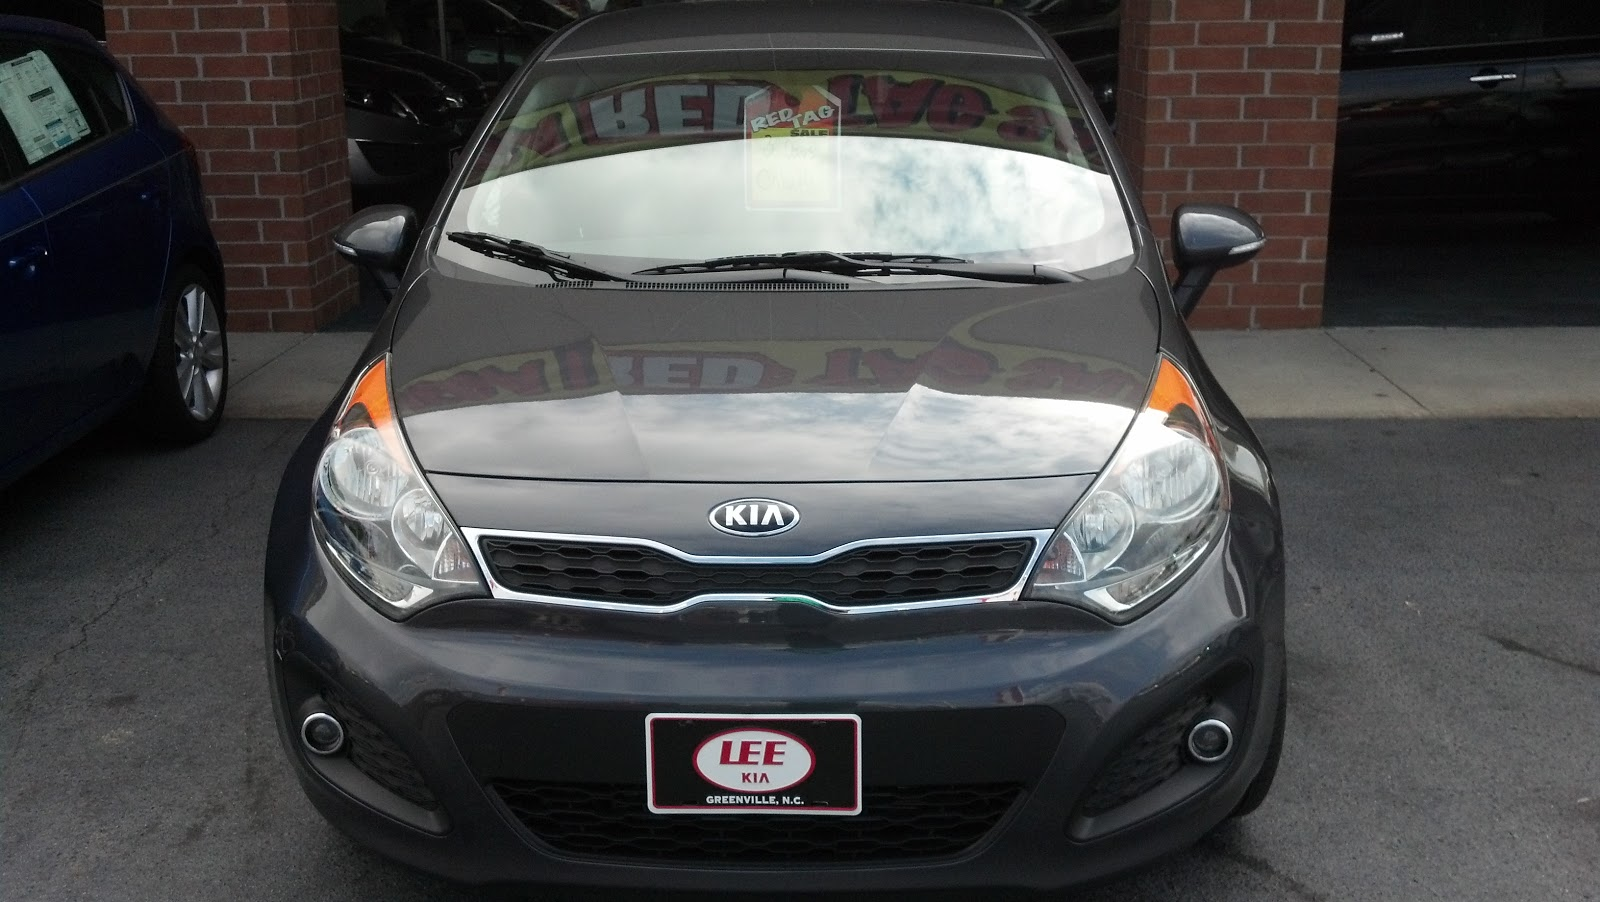 The 2013 Rio 5 Door To Me Is The Best Looking Car In Itu0027s Class. The Kia  Designers Have Done An Amazing Job At Crafting Attractive Vehicles. The Kia  Rio ...